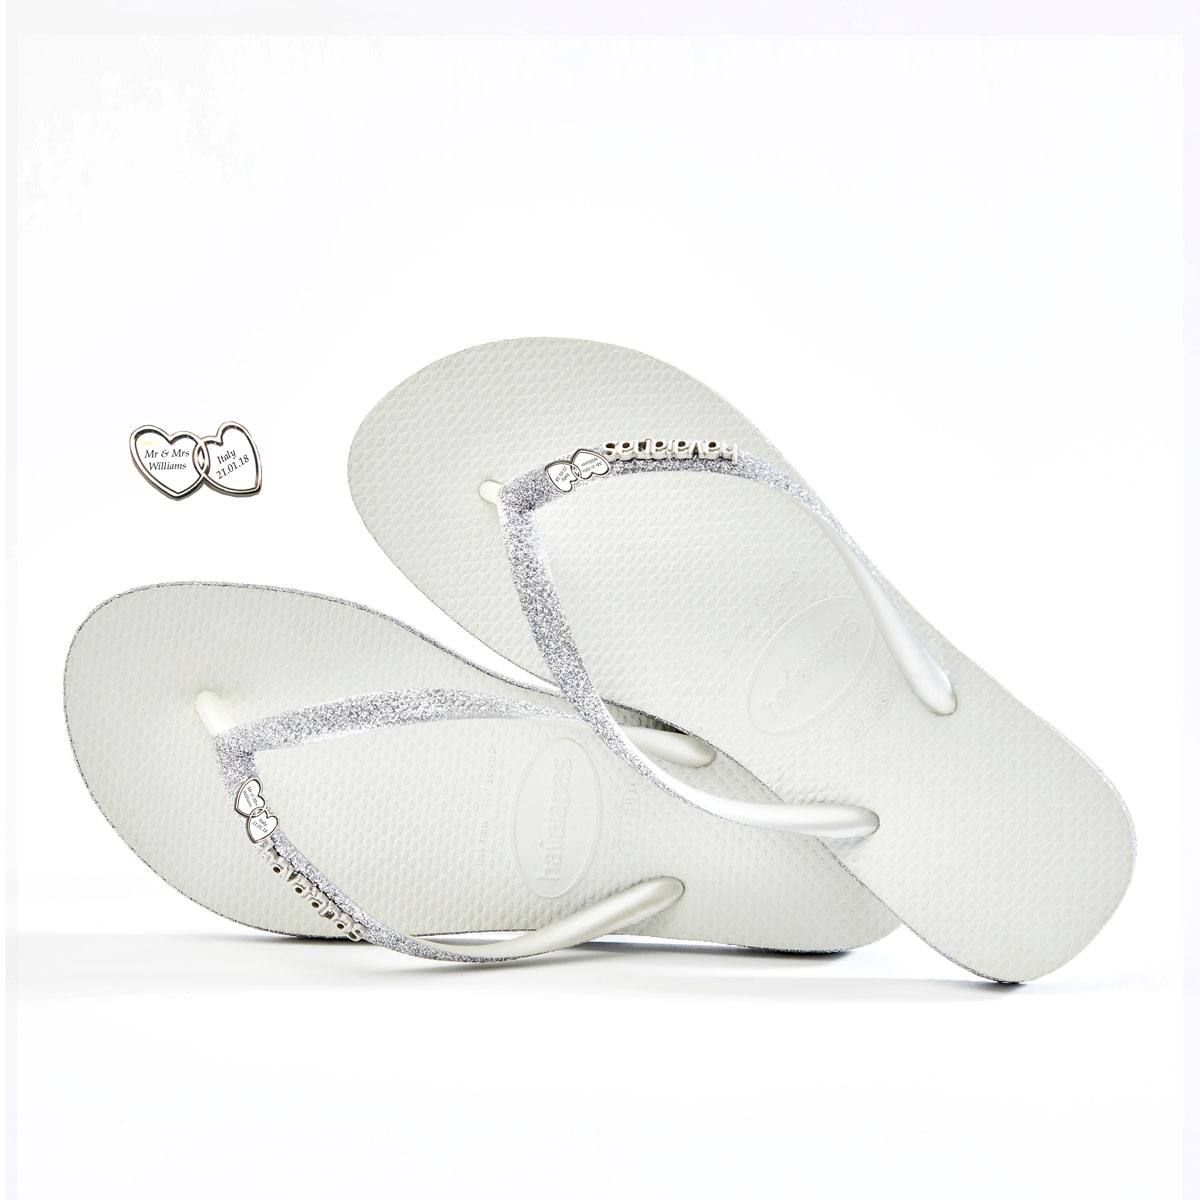 havaianas slim white sparkle silver linked hearts engraved